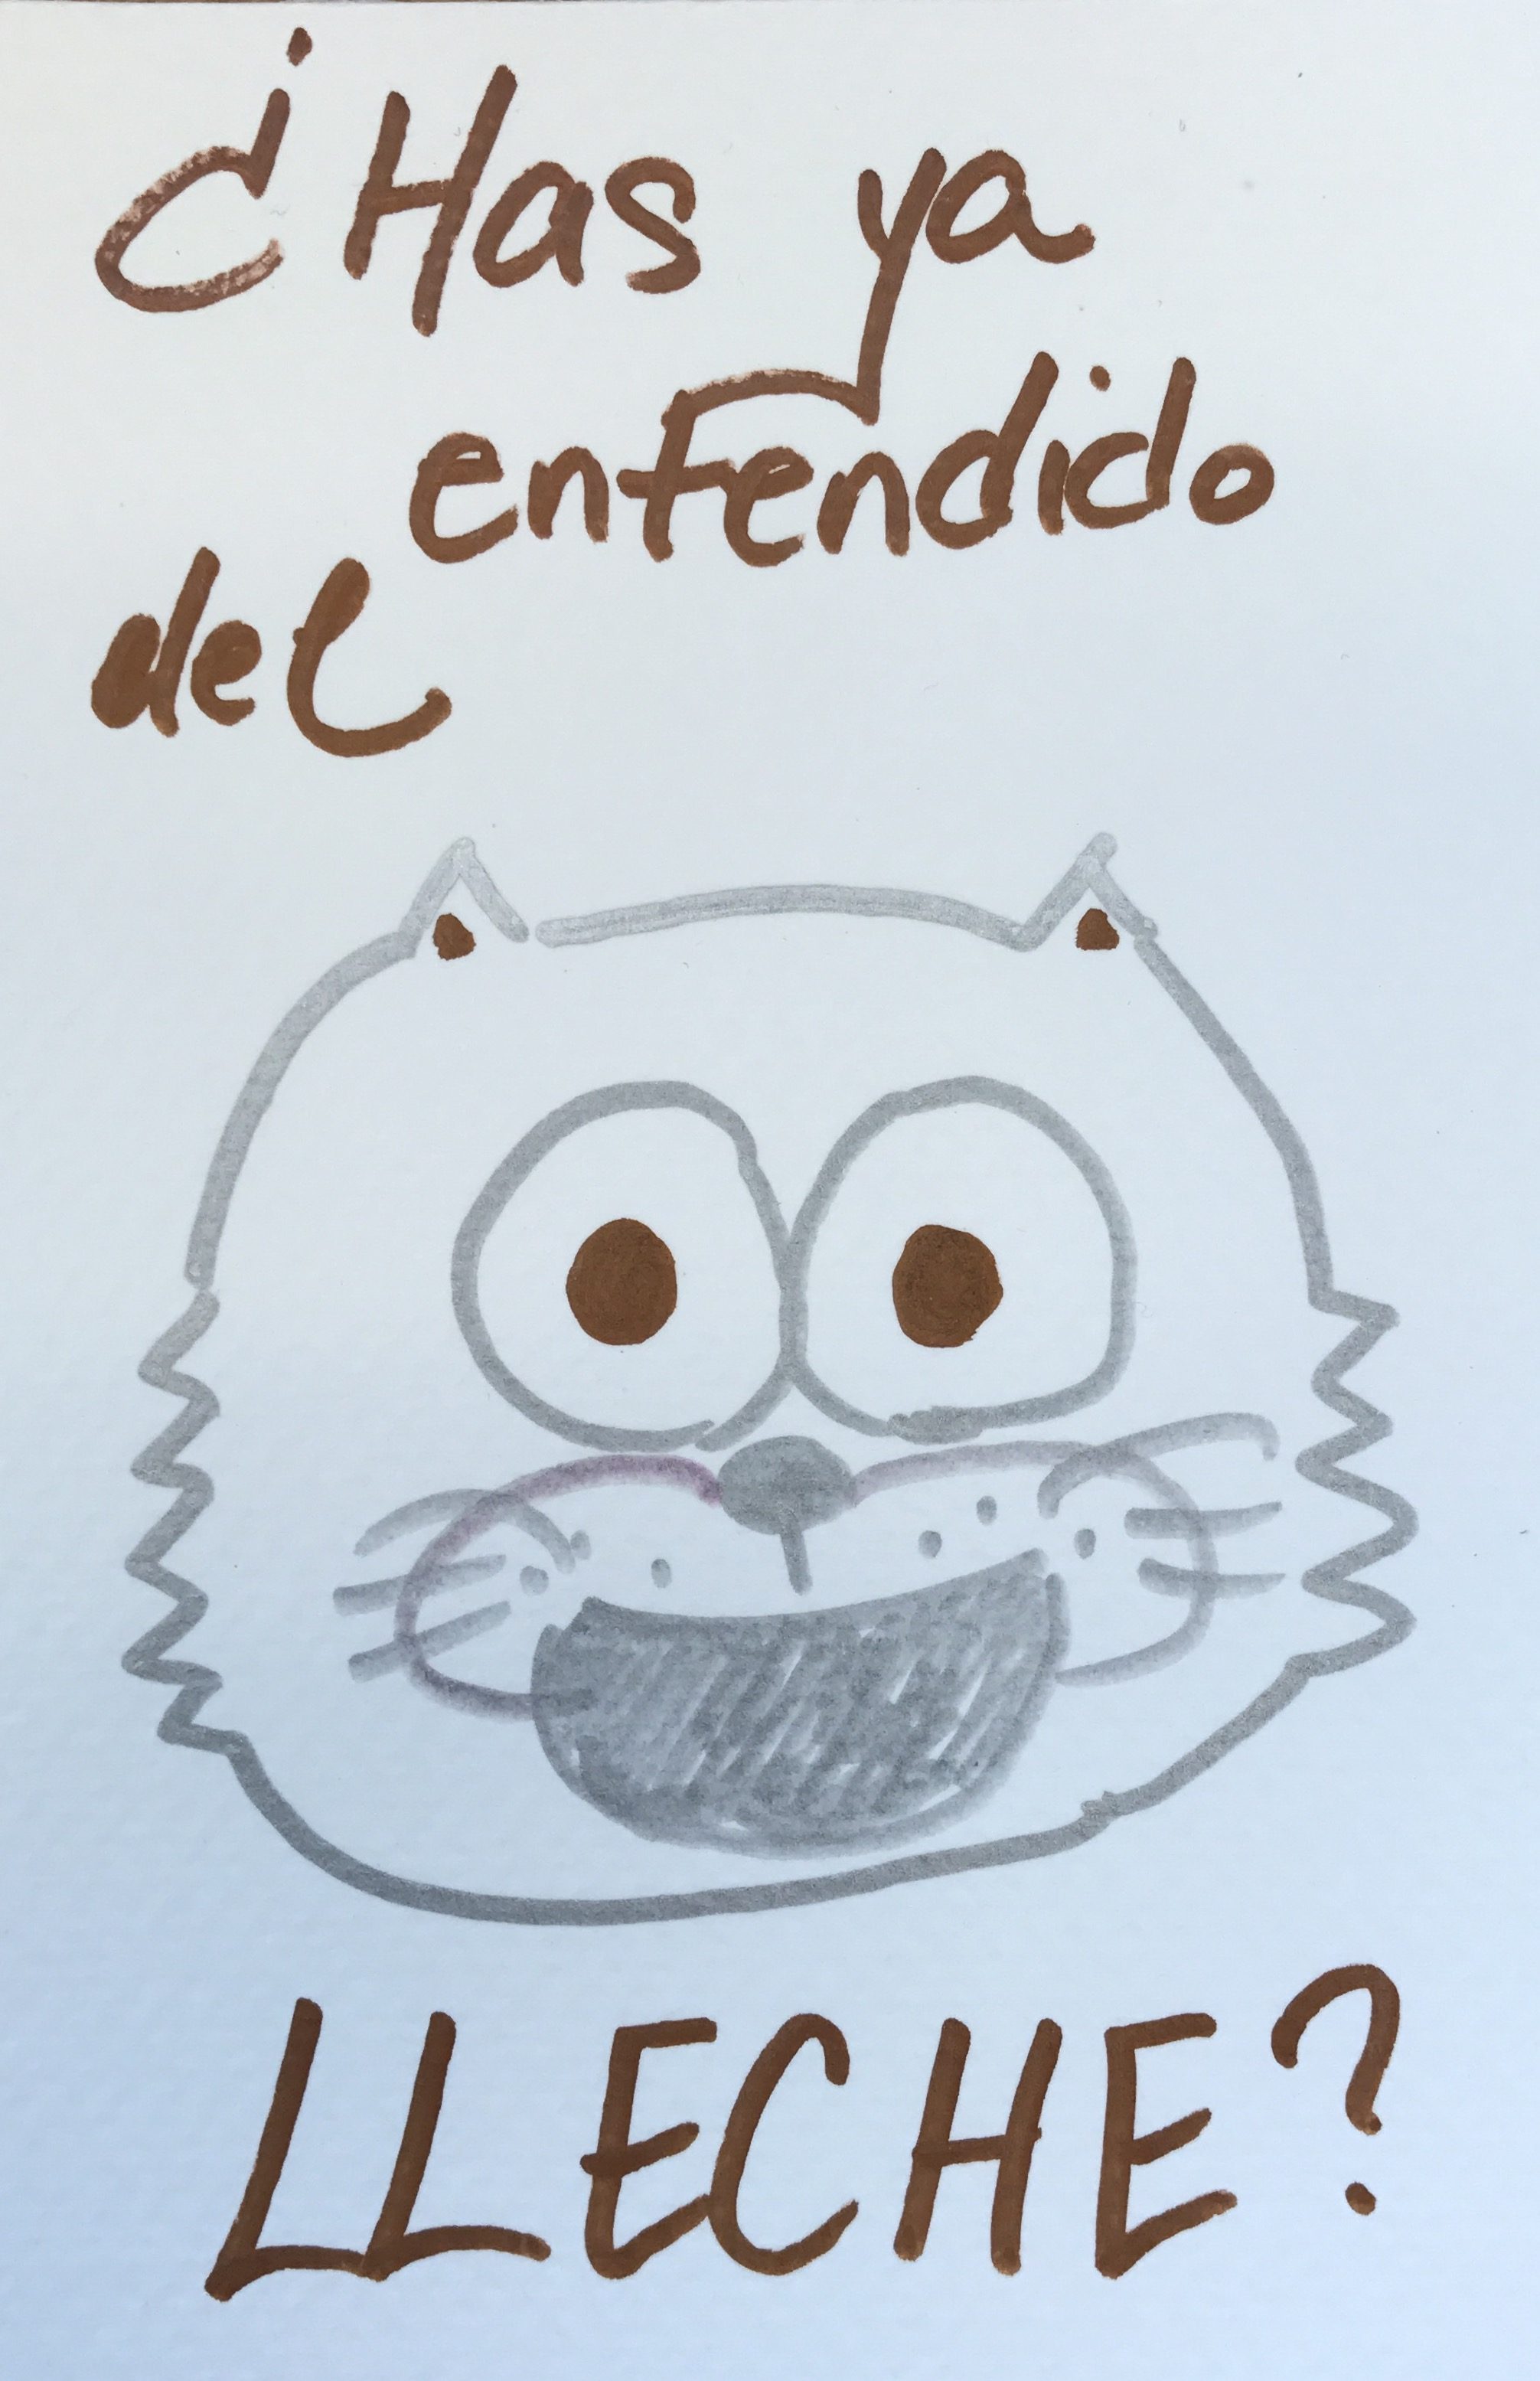 Has ya entendido del lleche 日本語 書道 かわいい ぺん kawaii draw ink calligraphy art cartoon Spanish